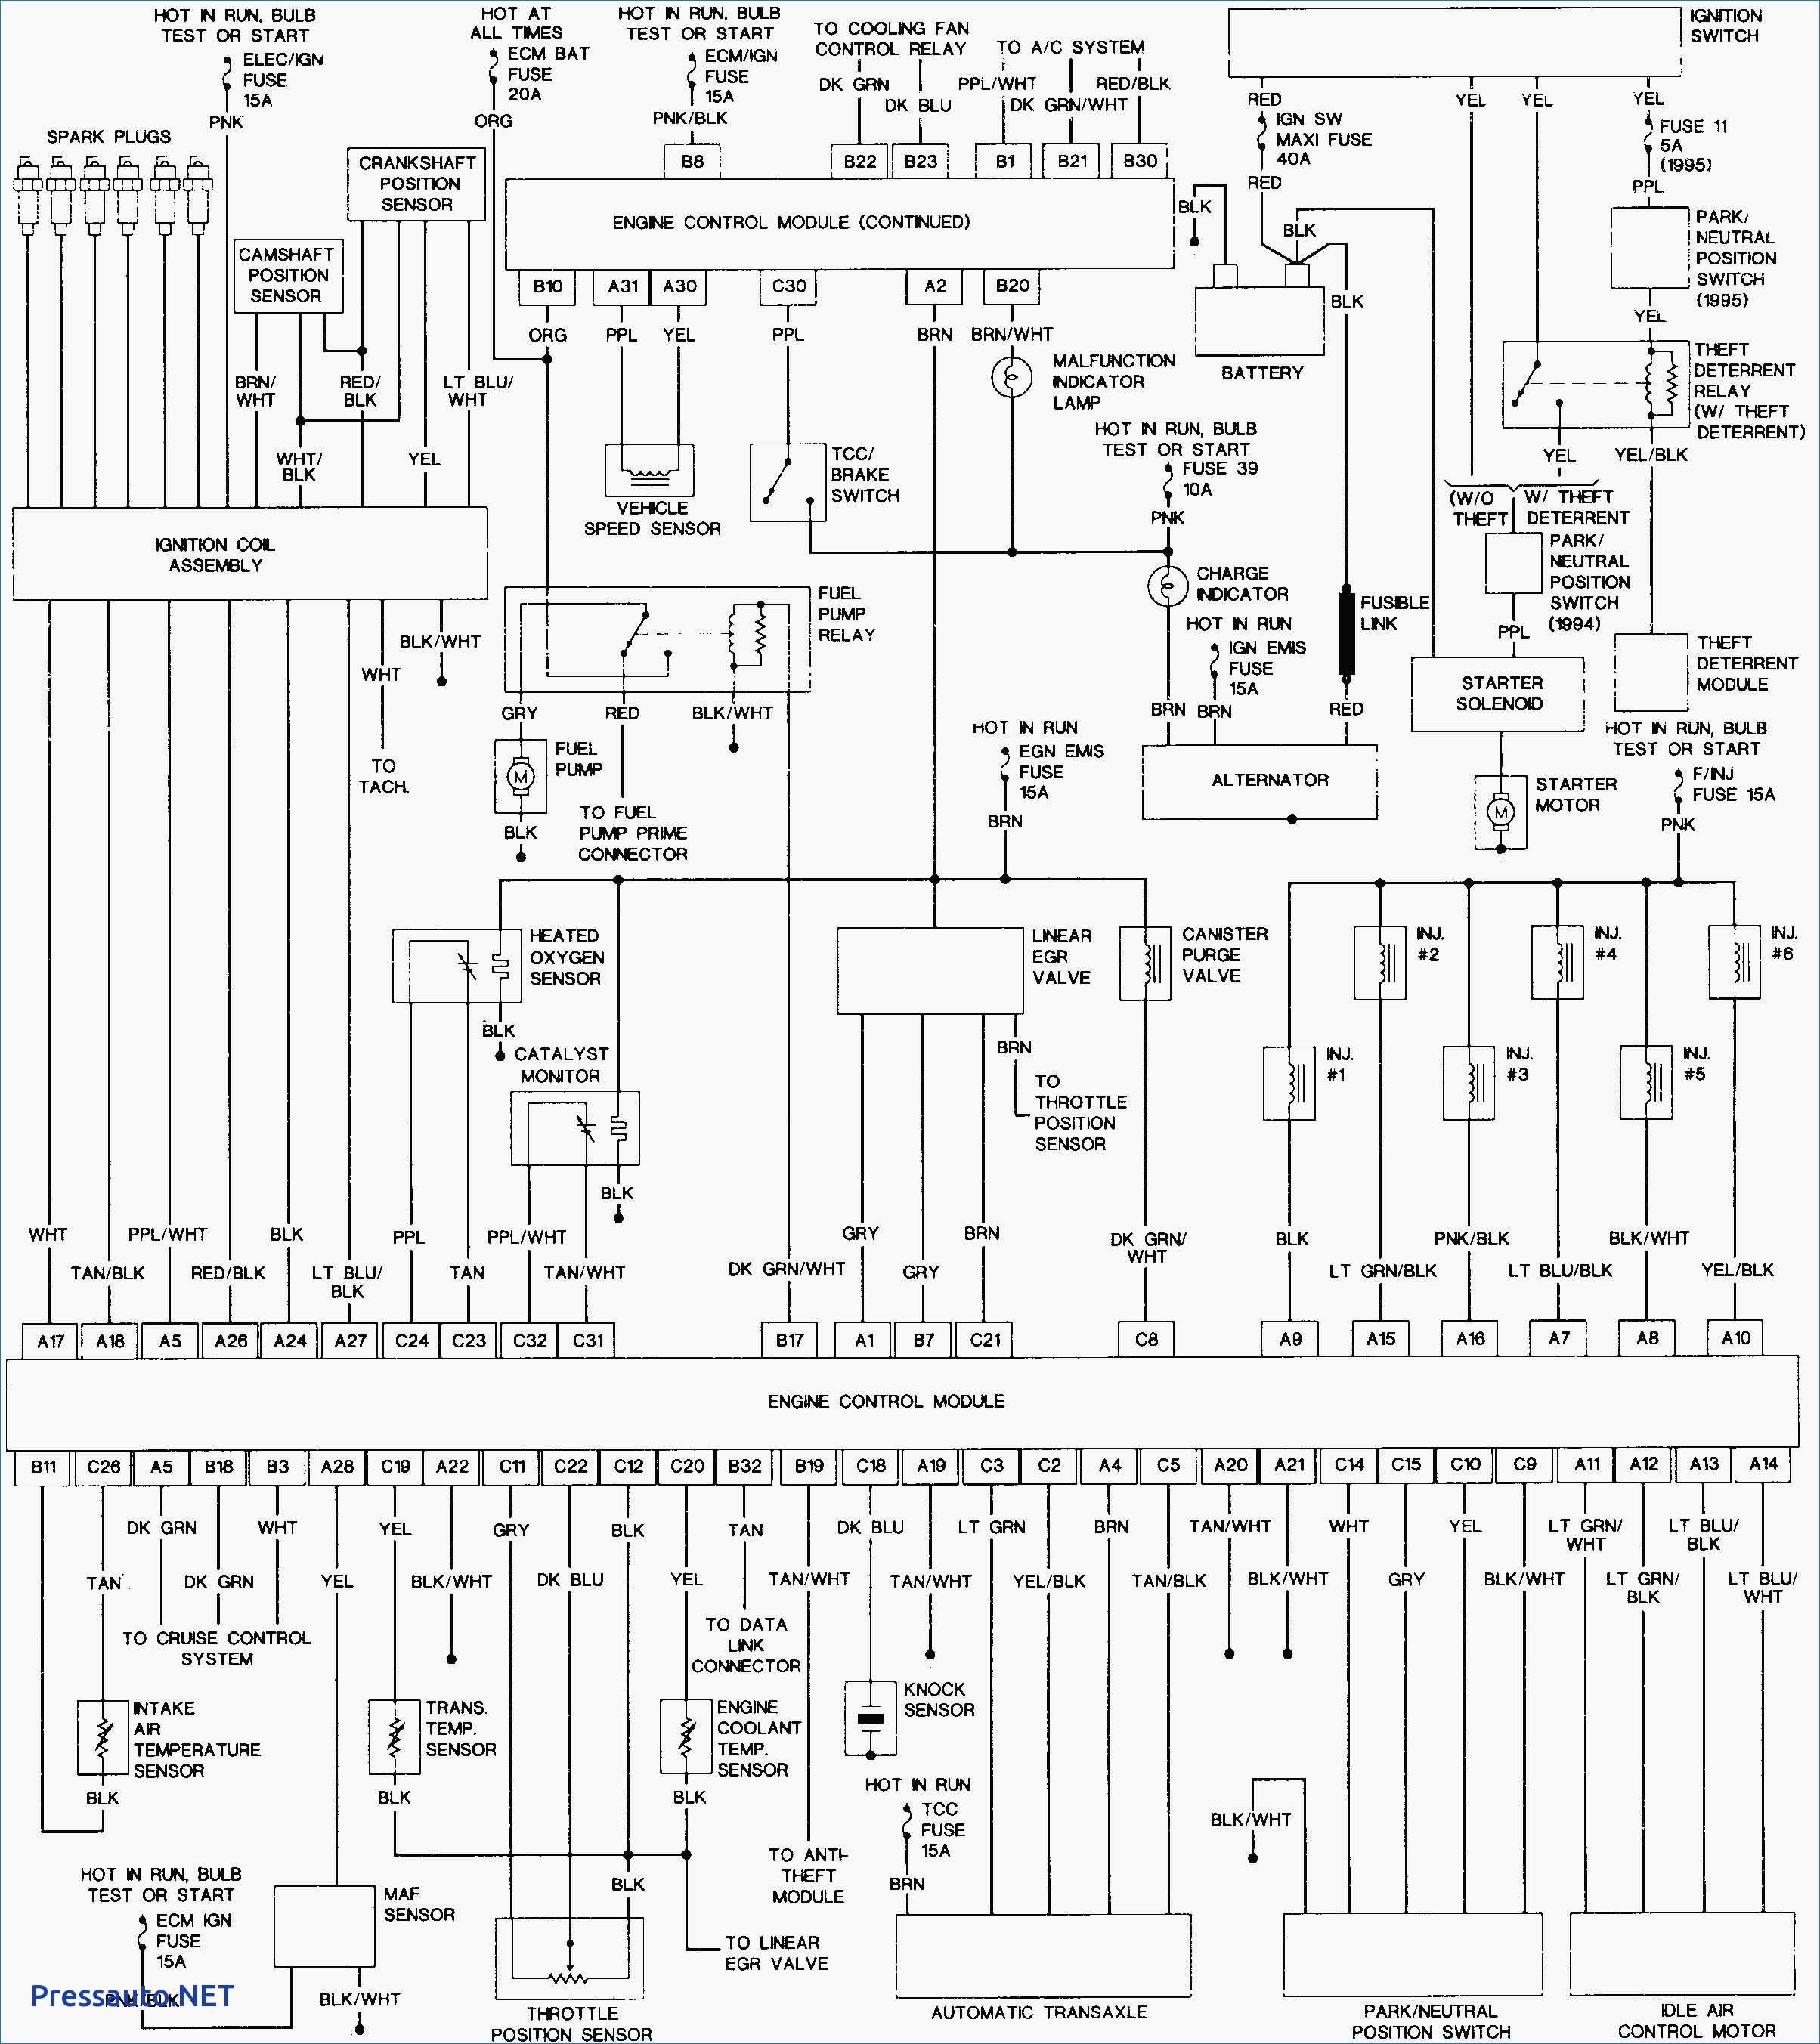 1979 Corvette Wiring Diagram Wiring Diagram to 1979 Corvette Wiring